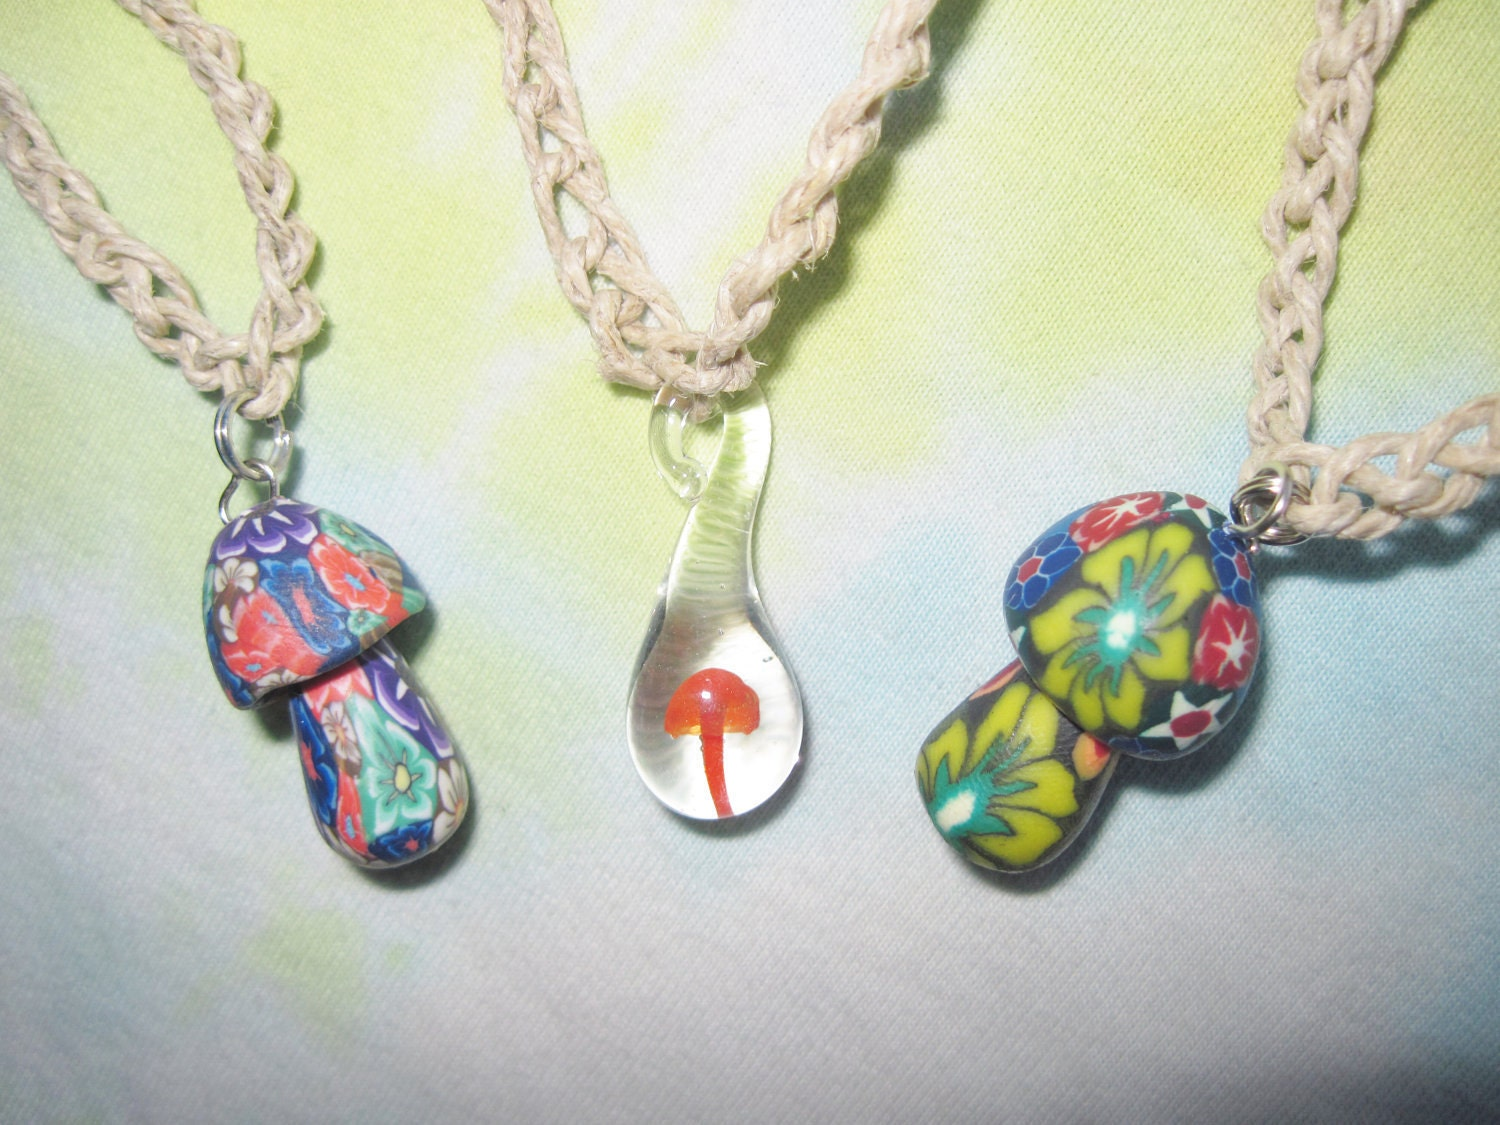 Hemp necklaces mushroom lot of 3 fimo glass pendant shrooms zoom mozeypictures Images